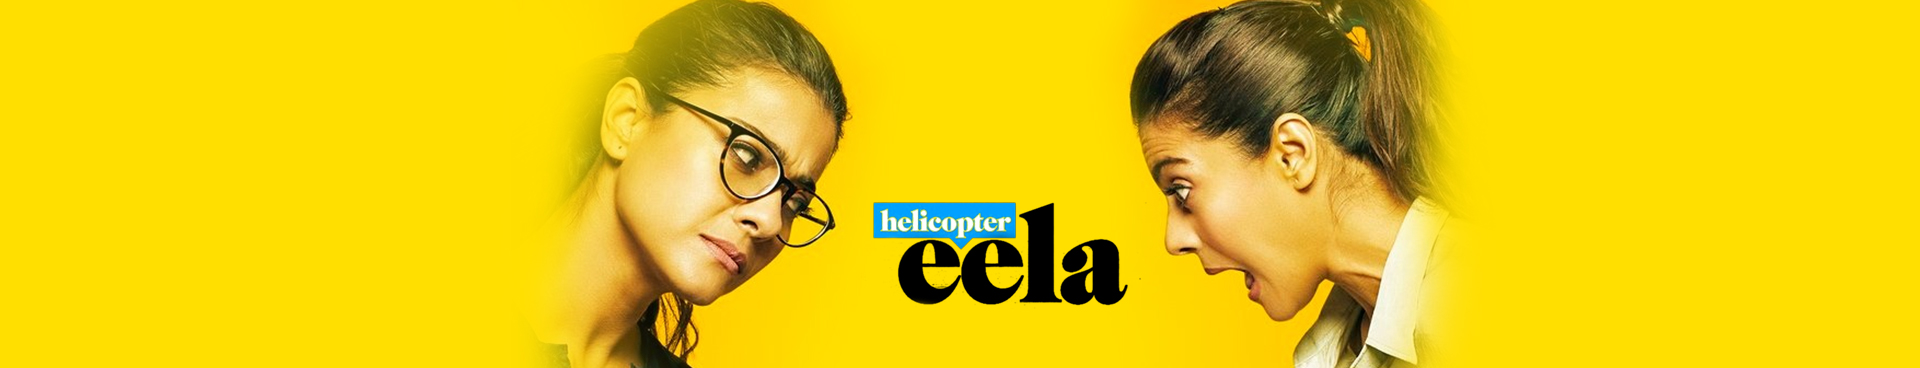 HELICOPTER EELA(HINDI)